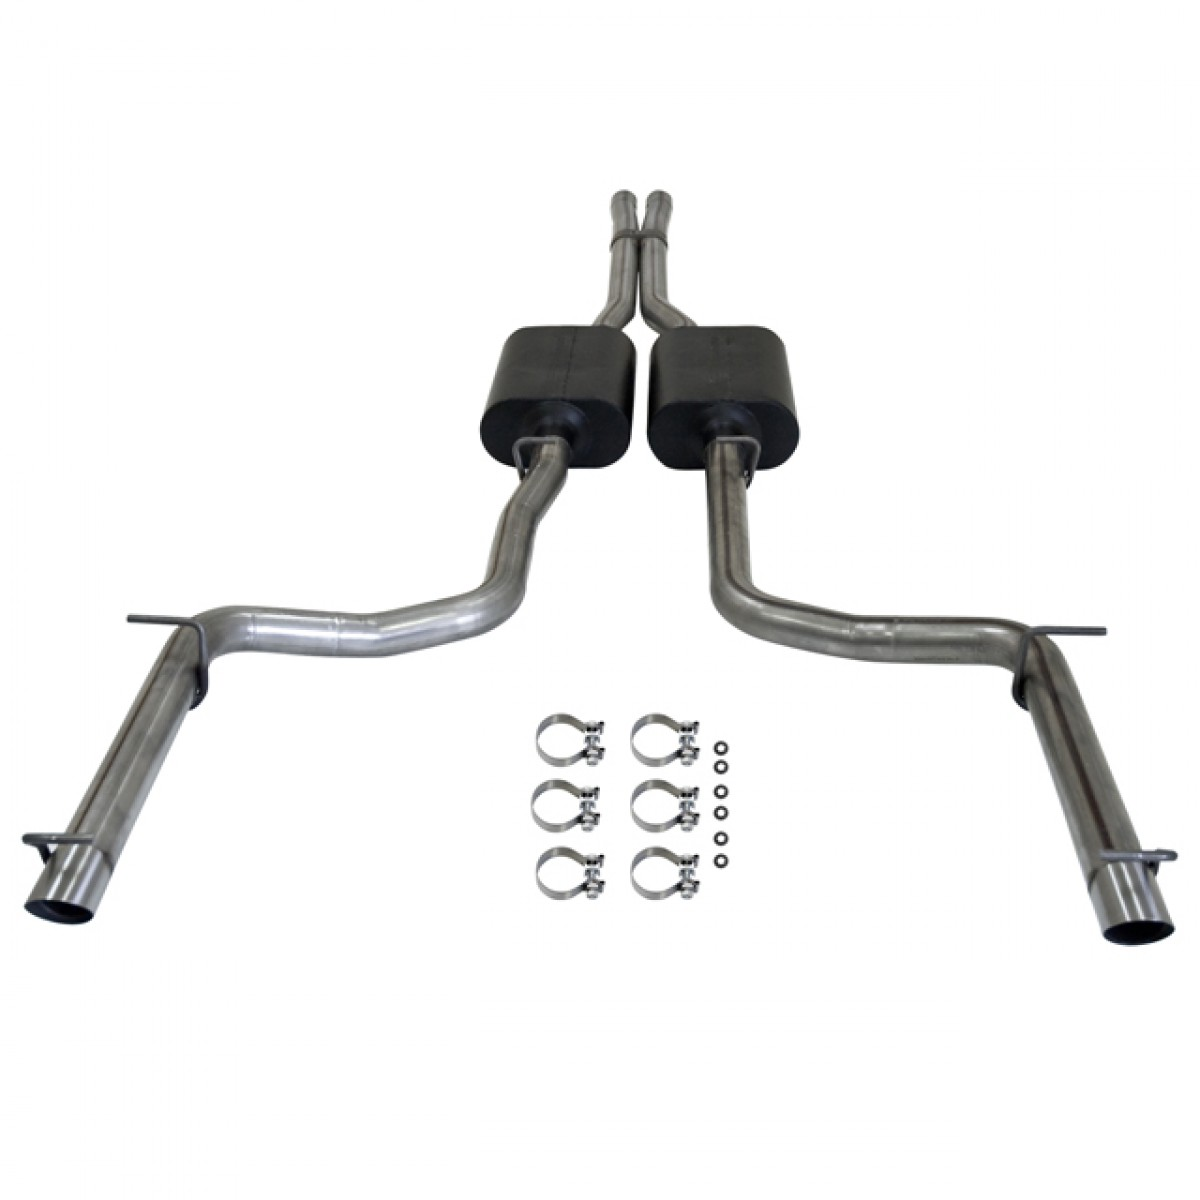 2011 2013 Dodge Charger Rt American Thunder Exhaust Chrysler 300 C Flowmaster American Thunder Exhaust Kit 817508